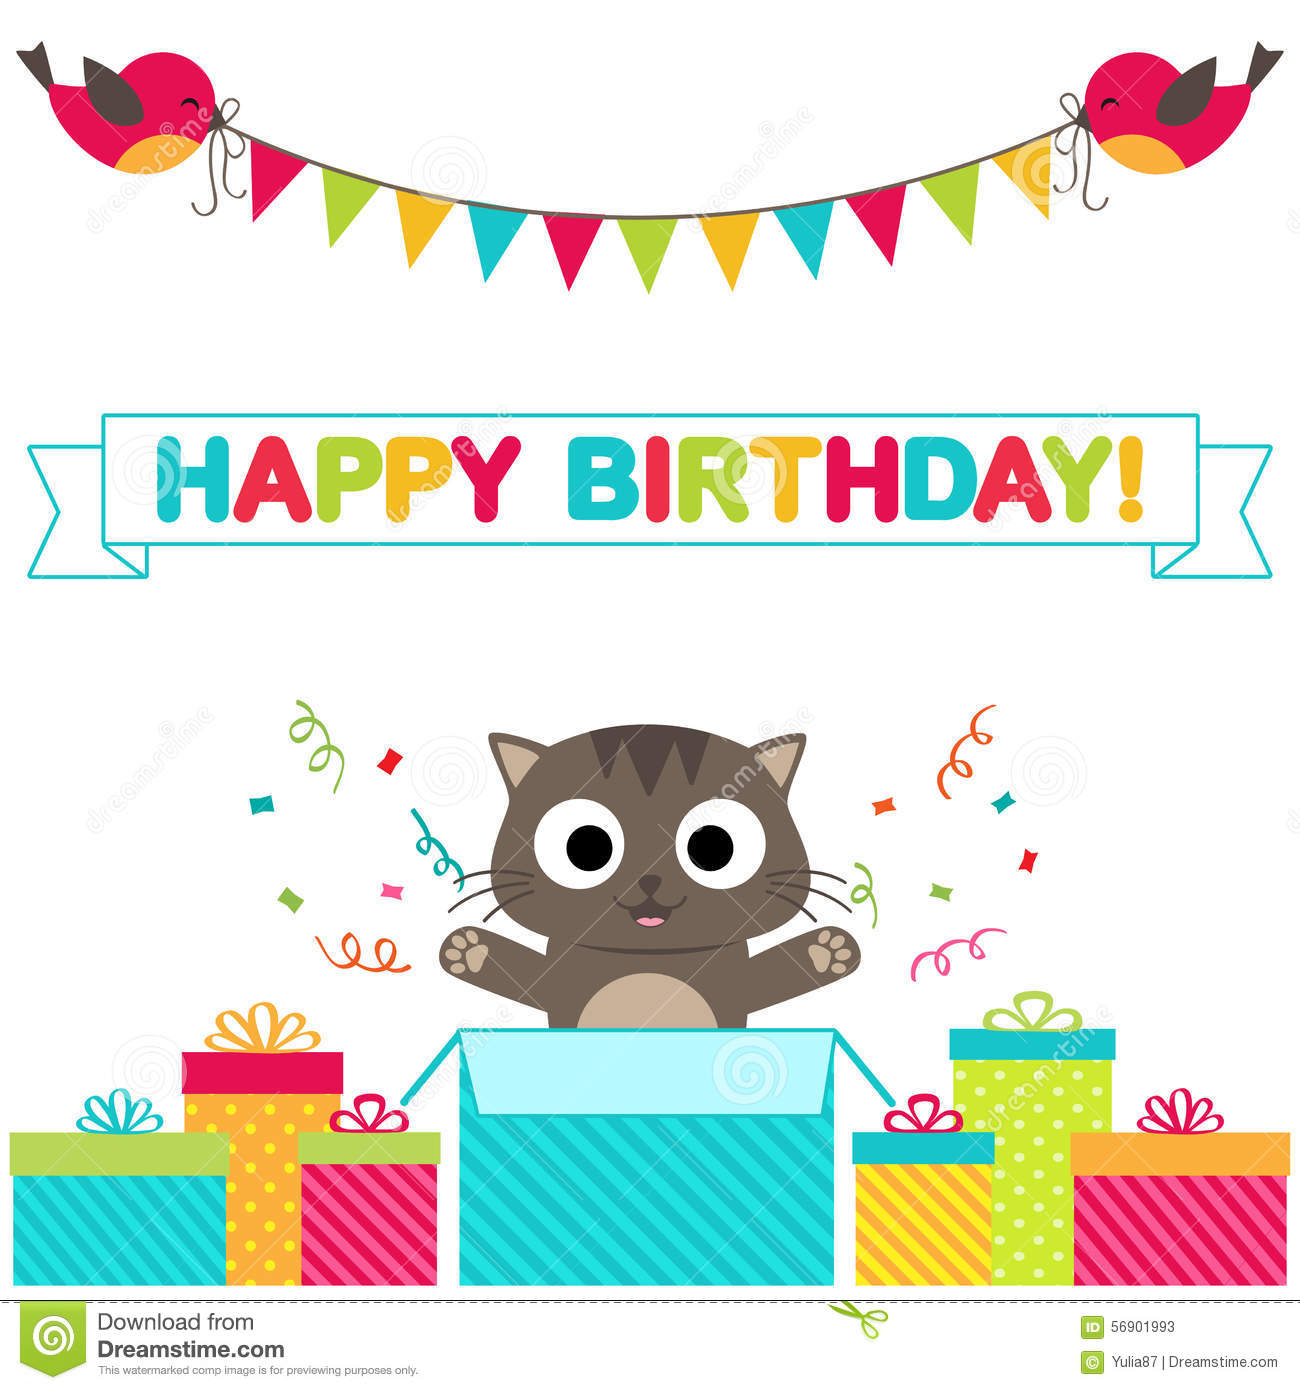 cat birthday invitation templates ; birthday-party-card-cute-background-funny-birds-cat-vector-template-invitation-56901993